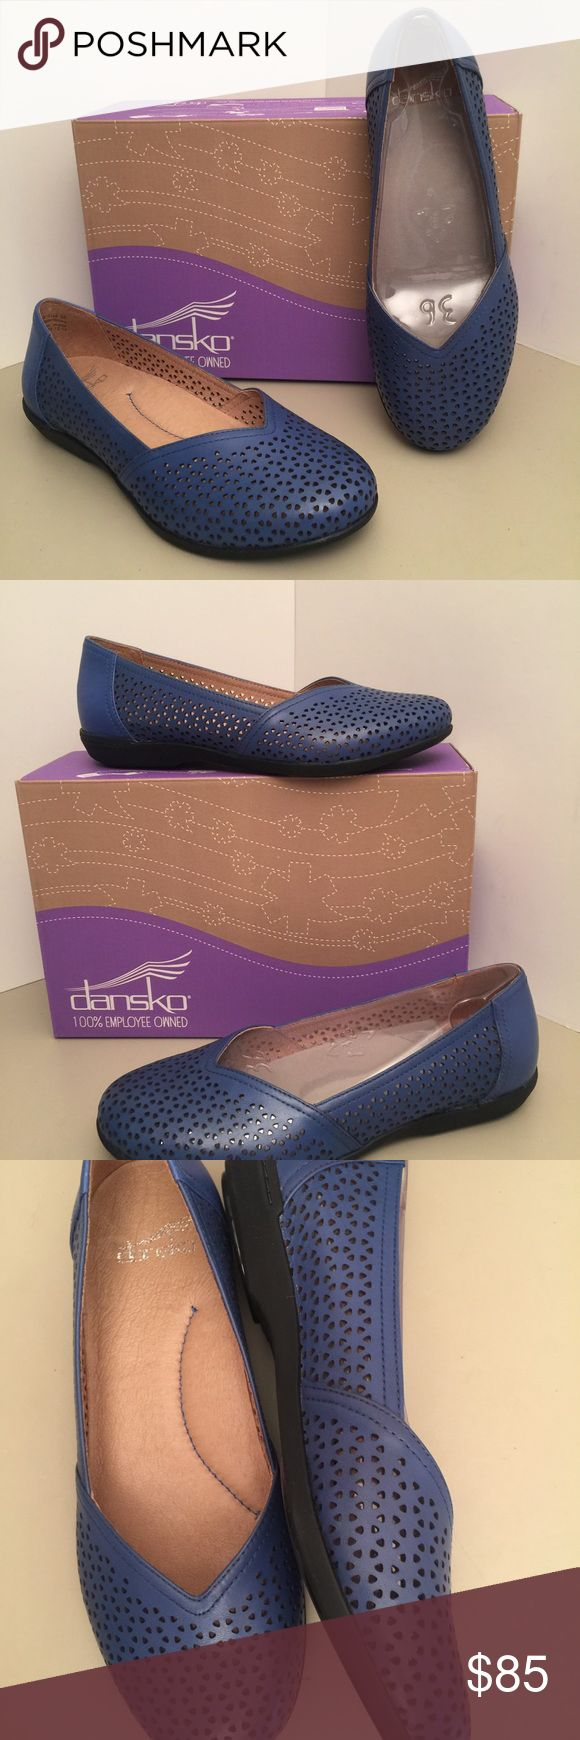 Dansko Blue Flats New in box leather perforated flats Dansko Shoes Flats & Loafers